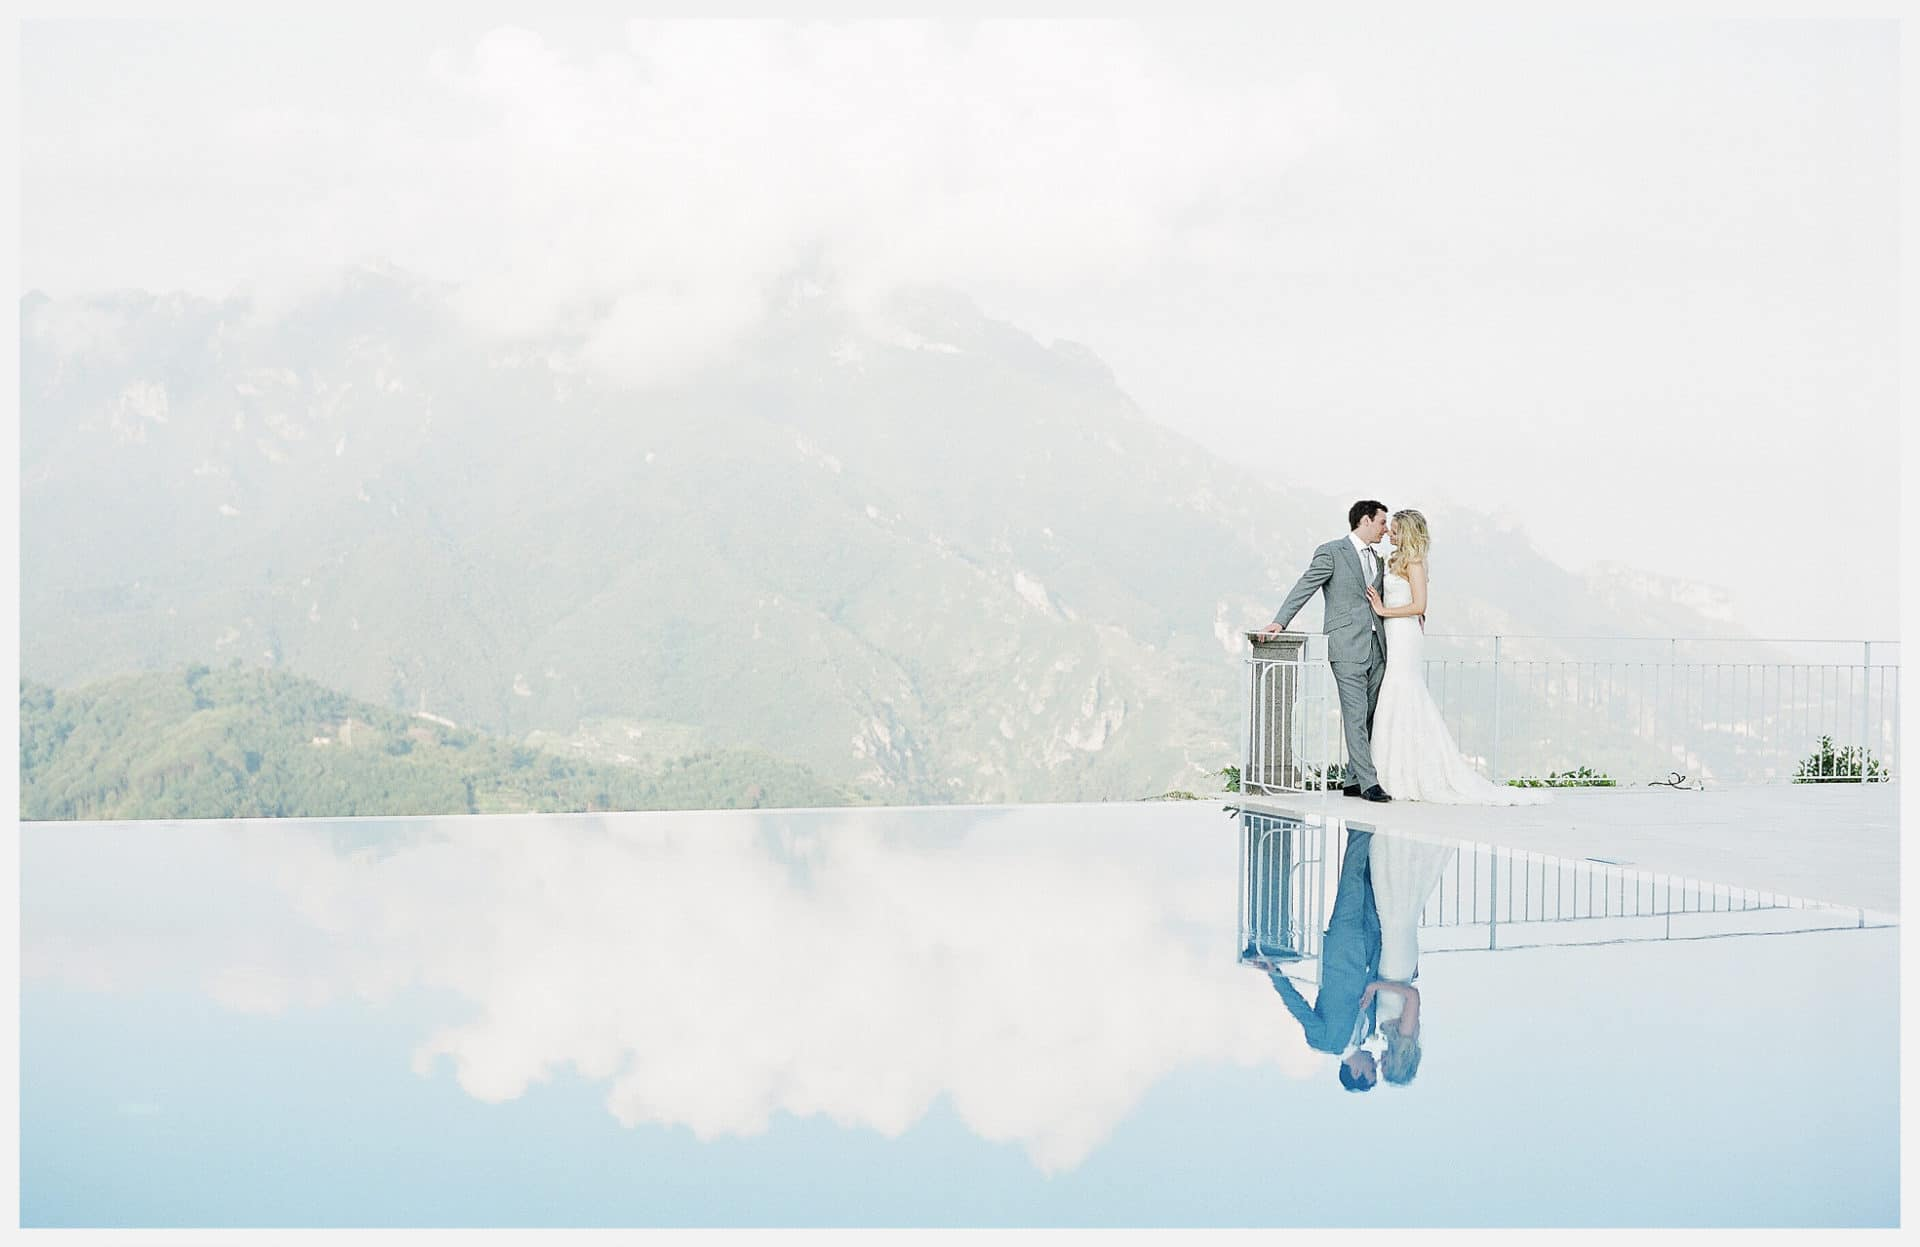 023Hotel-Belmond-Caruso-Ravello-Amalfi-Coast-Italy-Wedding-Photographer